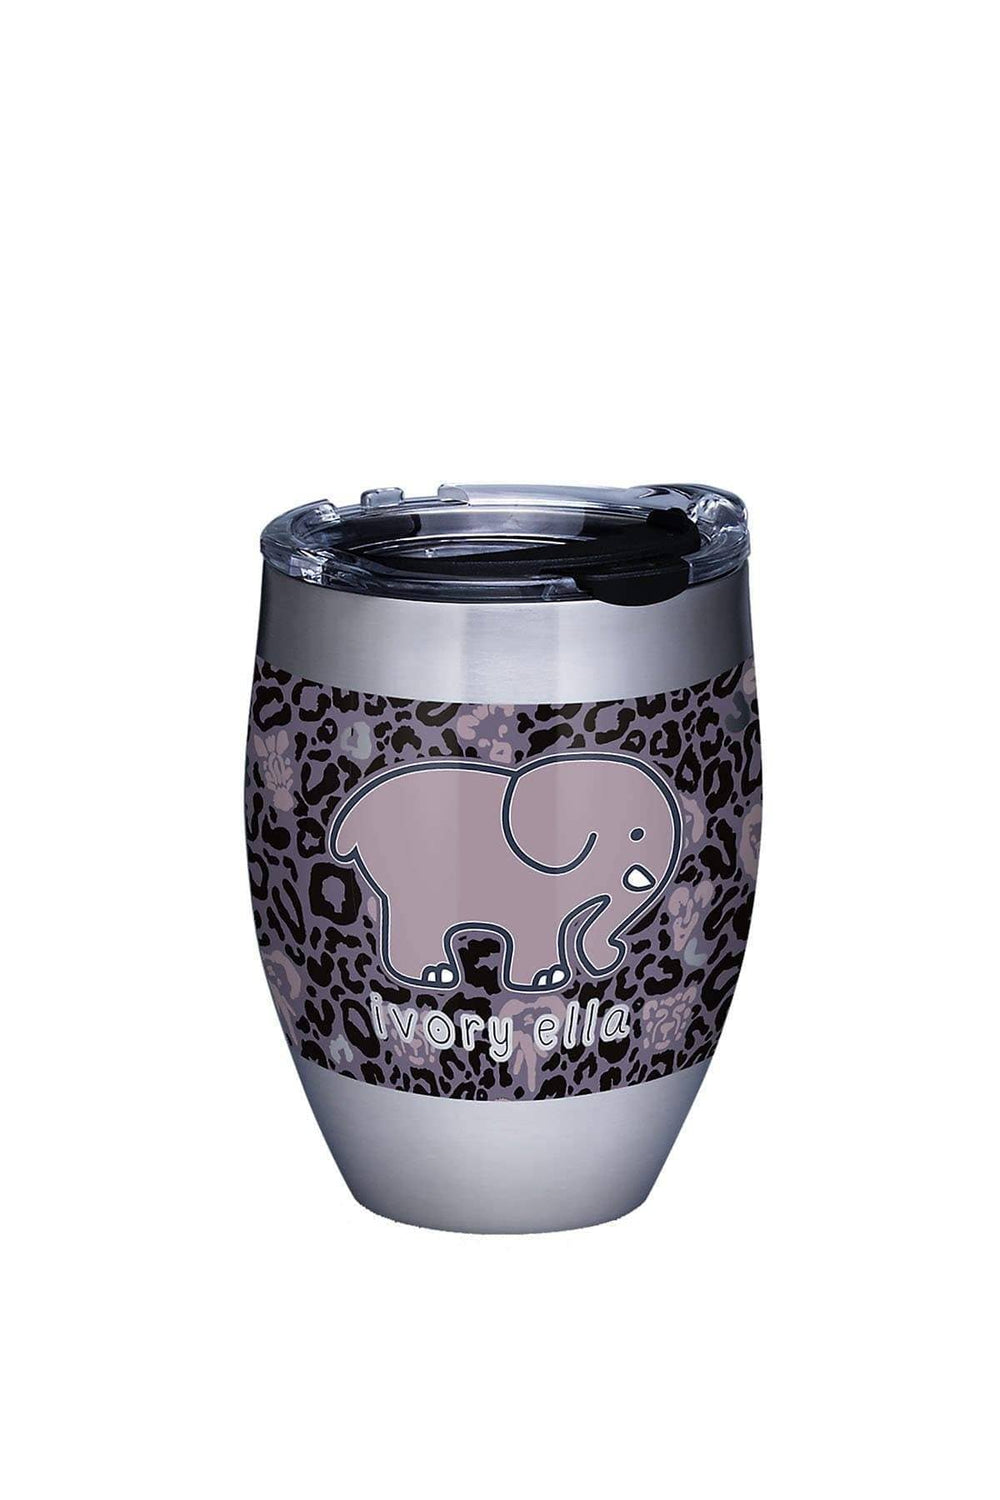 Ivory Ella Stainless Steel Leopard 12oz Tervis Tumbler